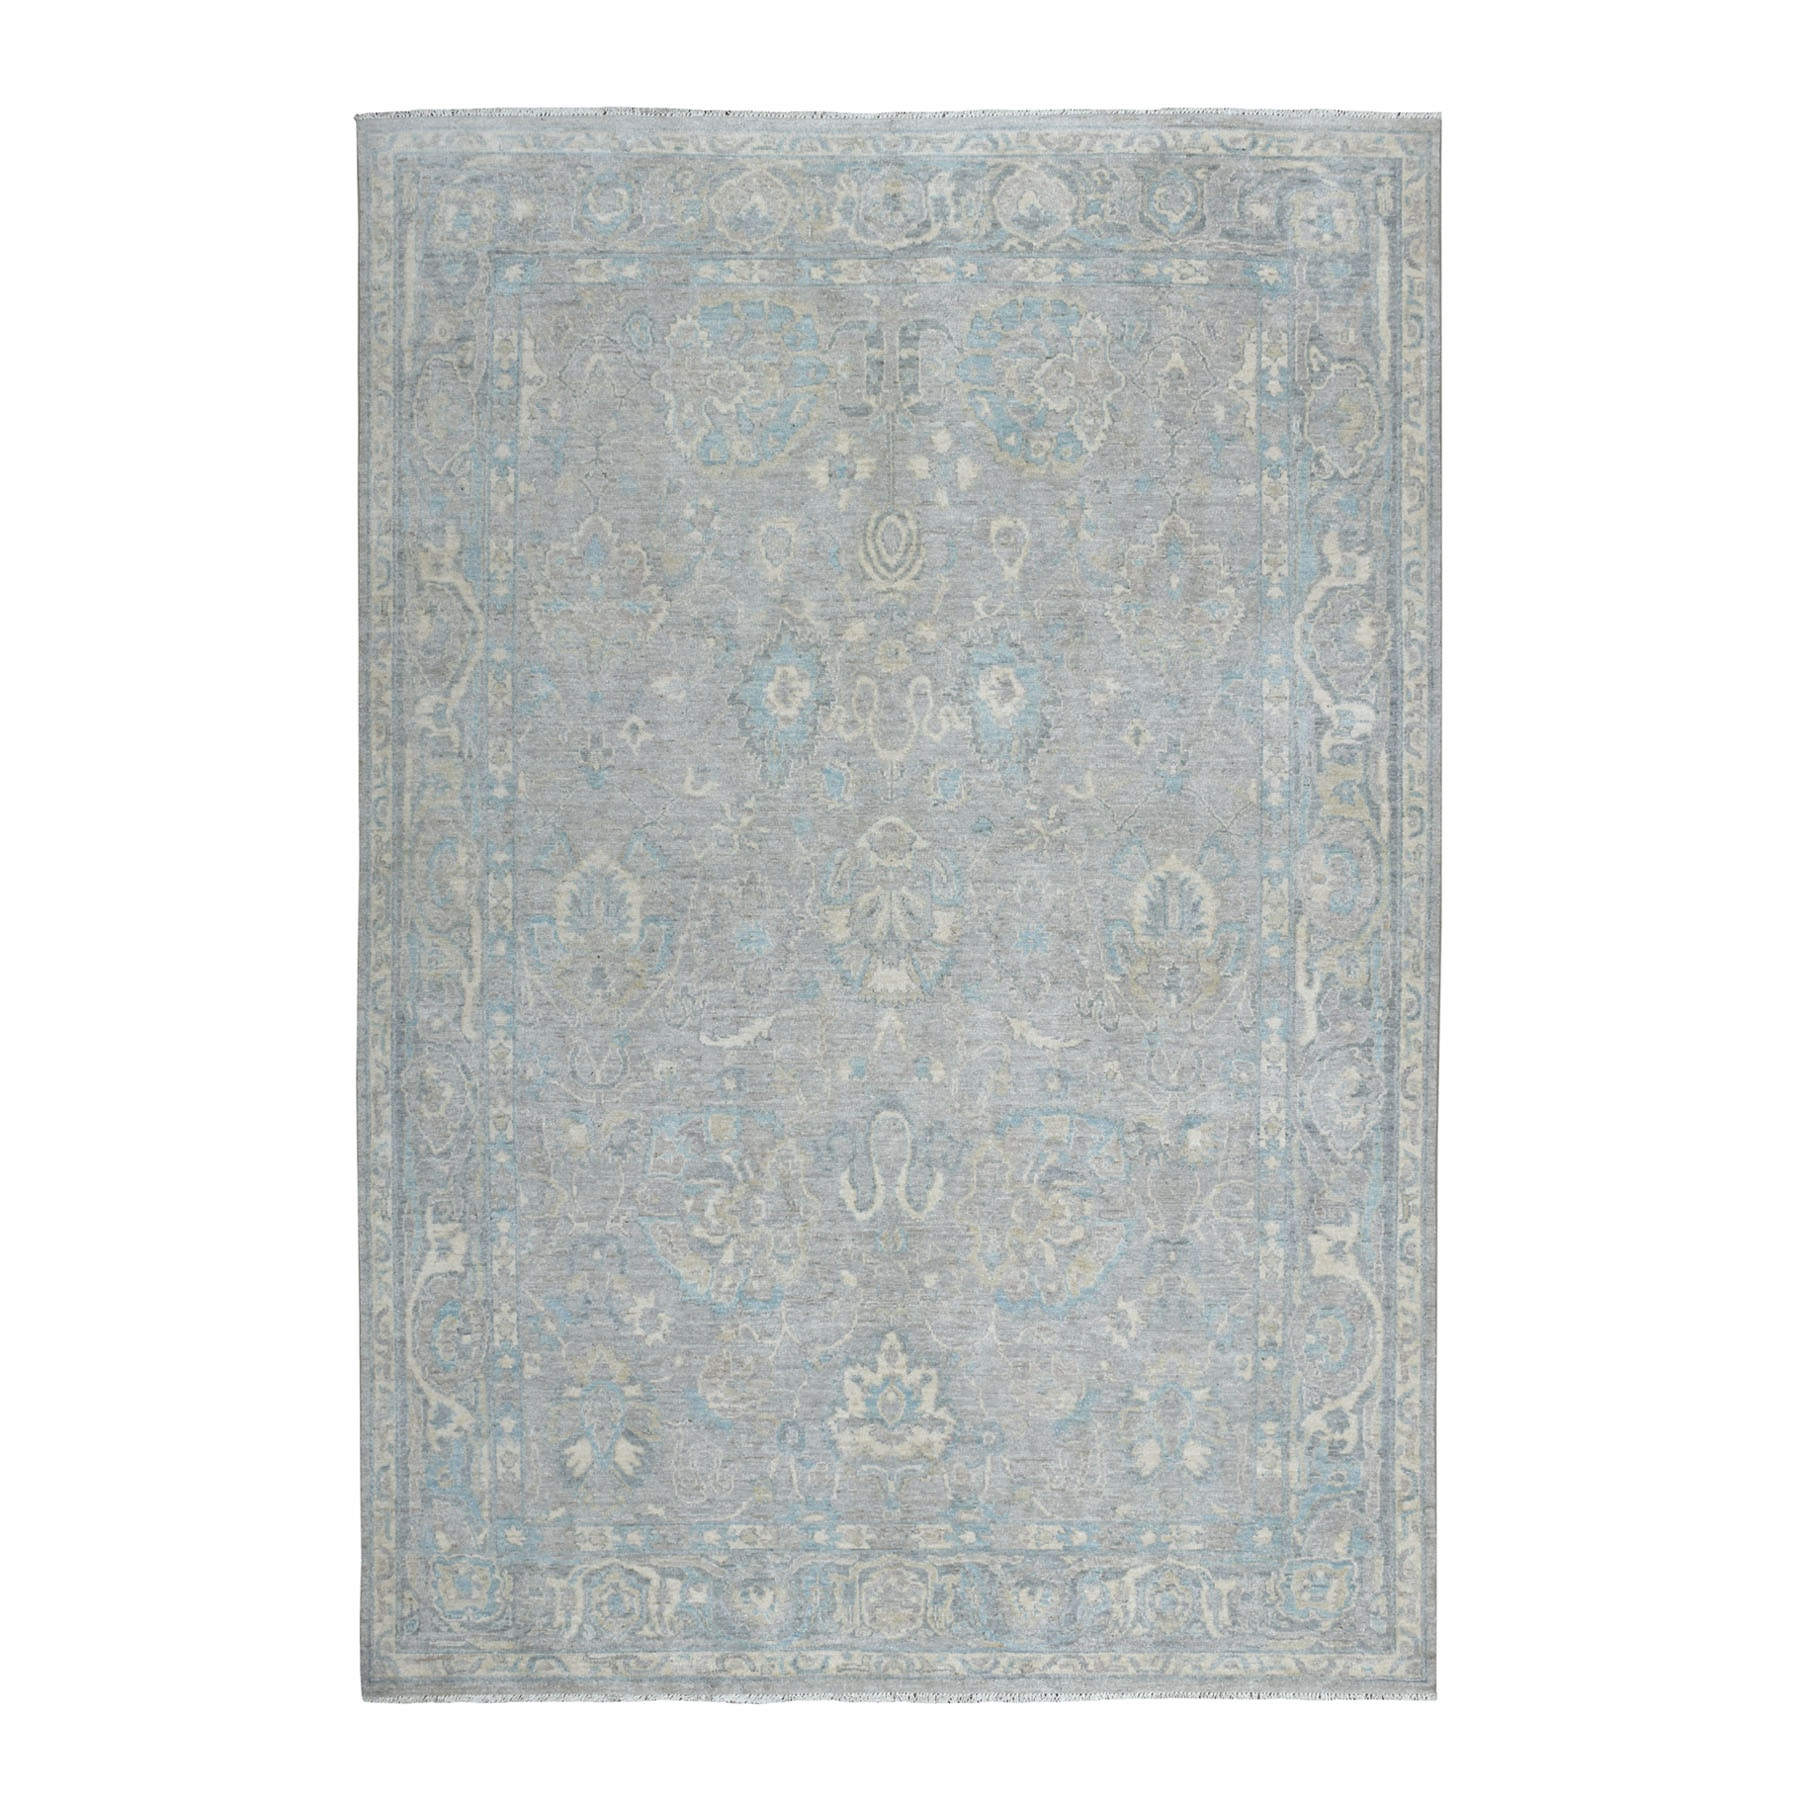 """6'X8'9"""" White Wash Peshawar Mahal Design Pure Wool Hand Knotted Oriental Rug moaec96a"""